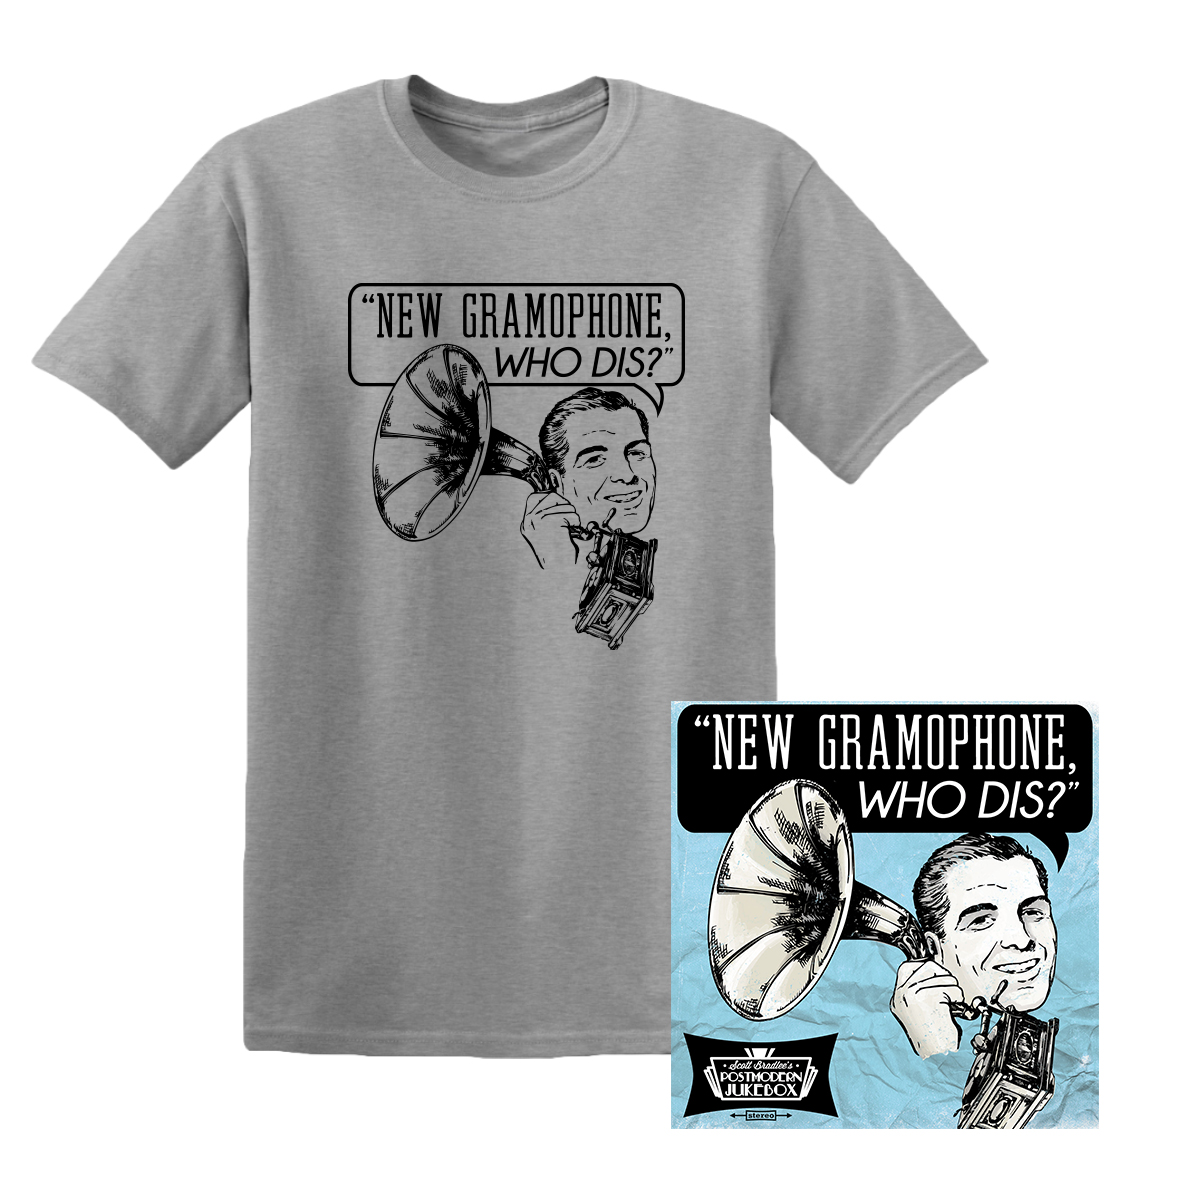 New Gramaphone, Who Dis? CD + T-Shirt bundle